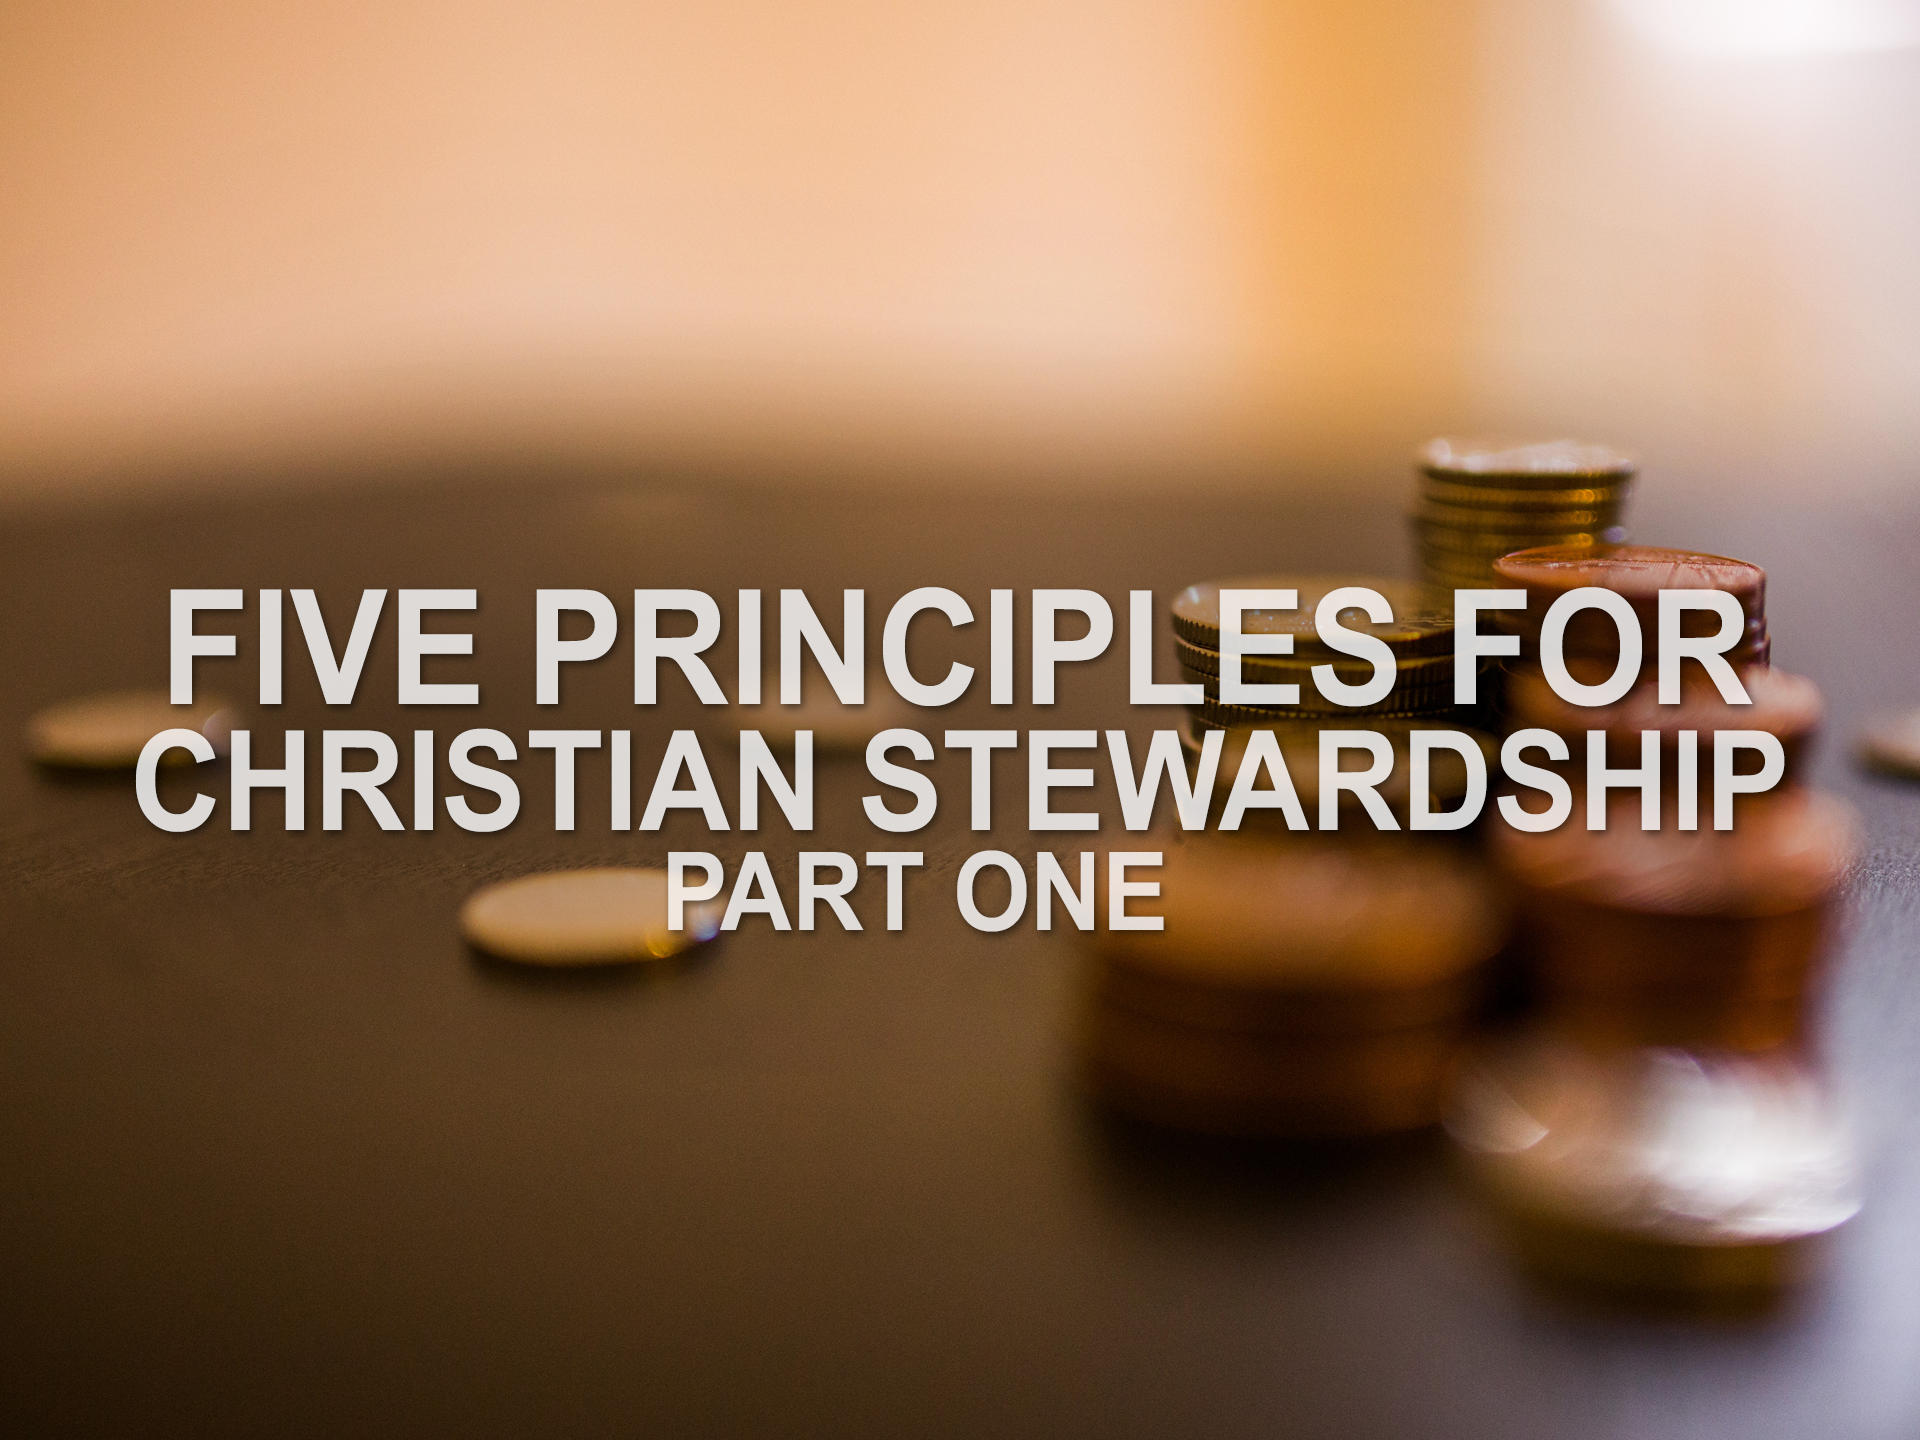 070719 five principles for christian stewardship part one.png